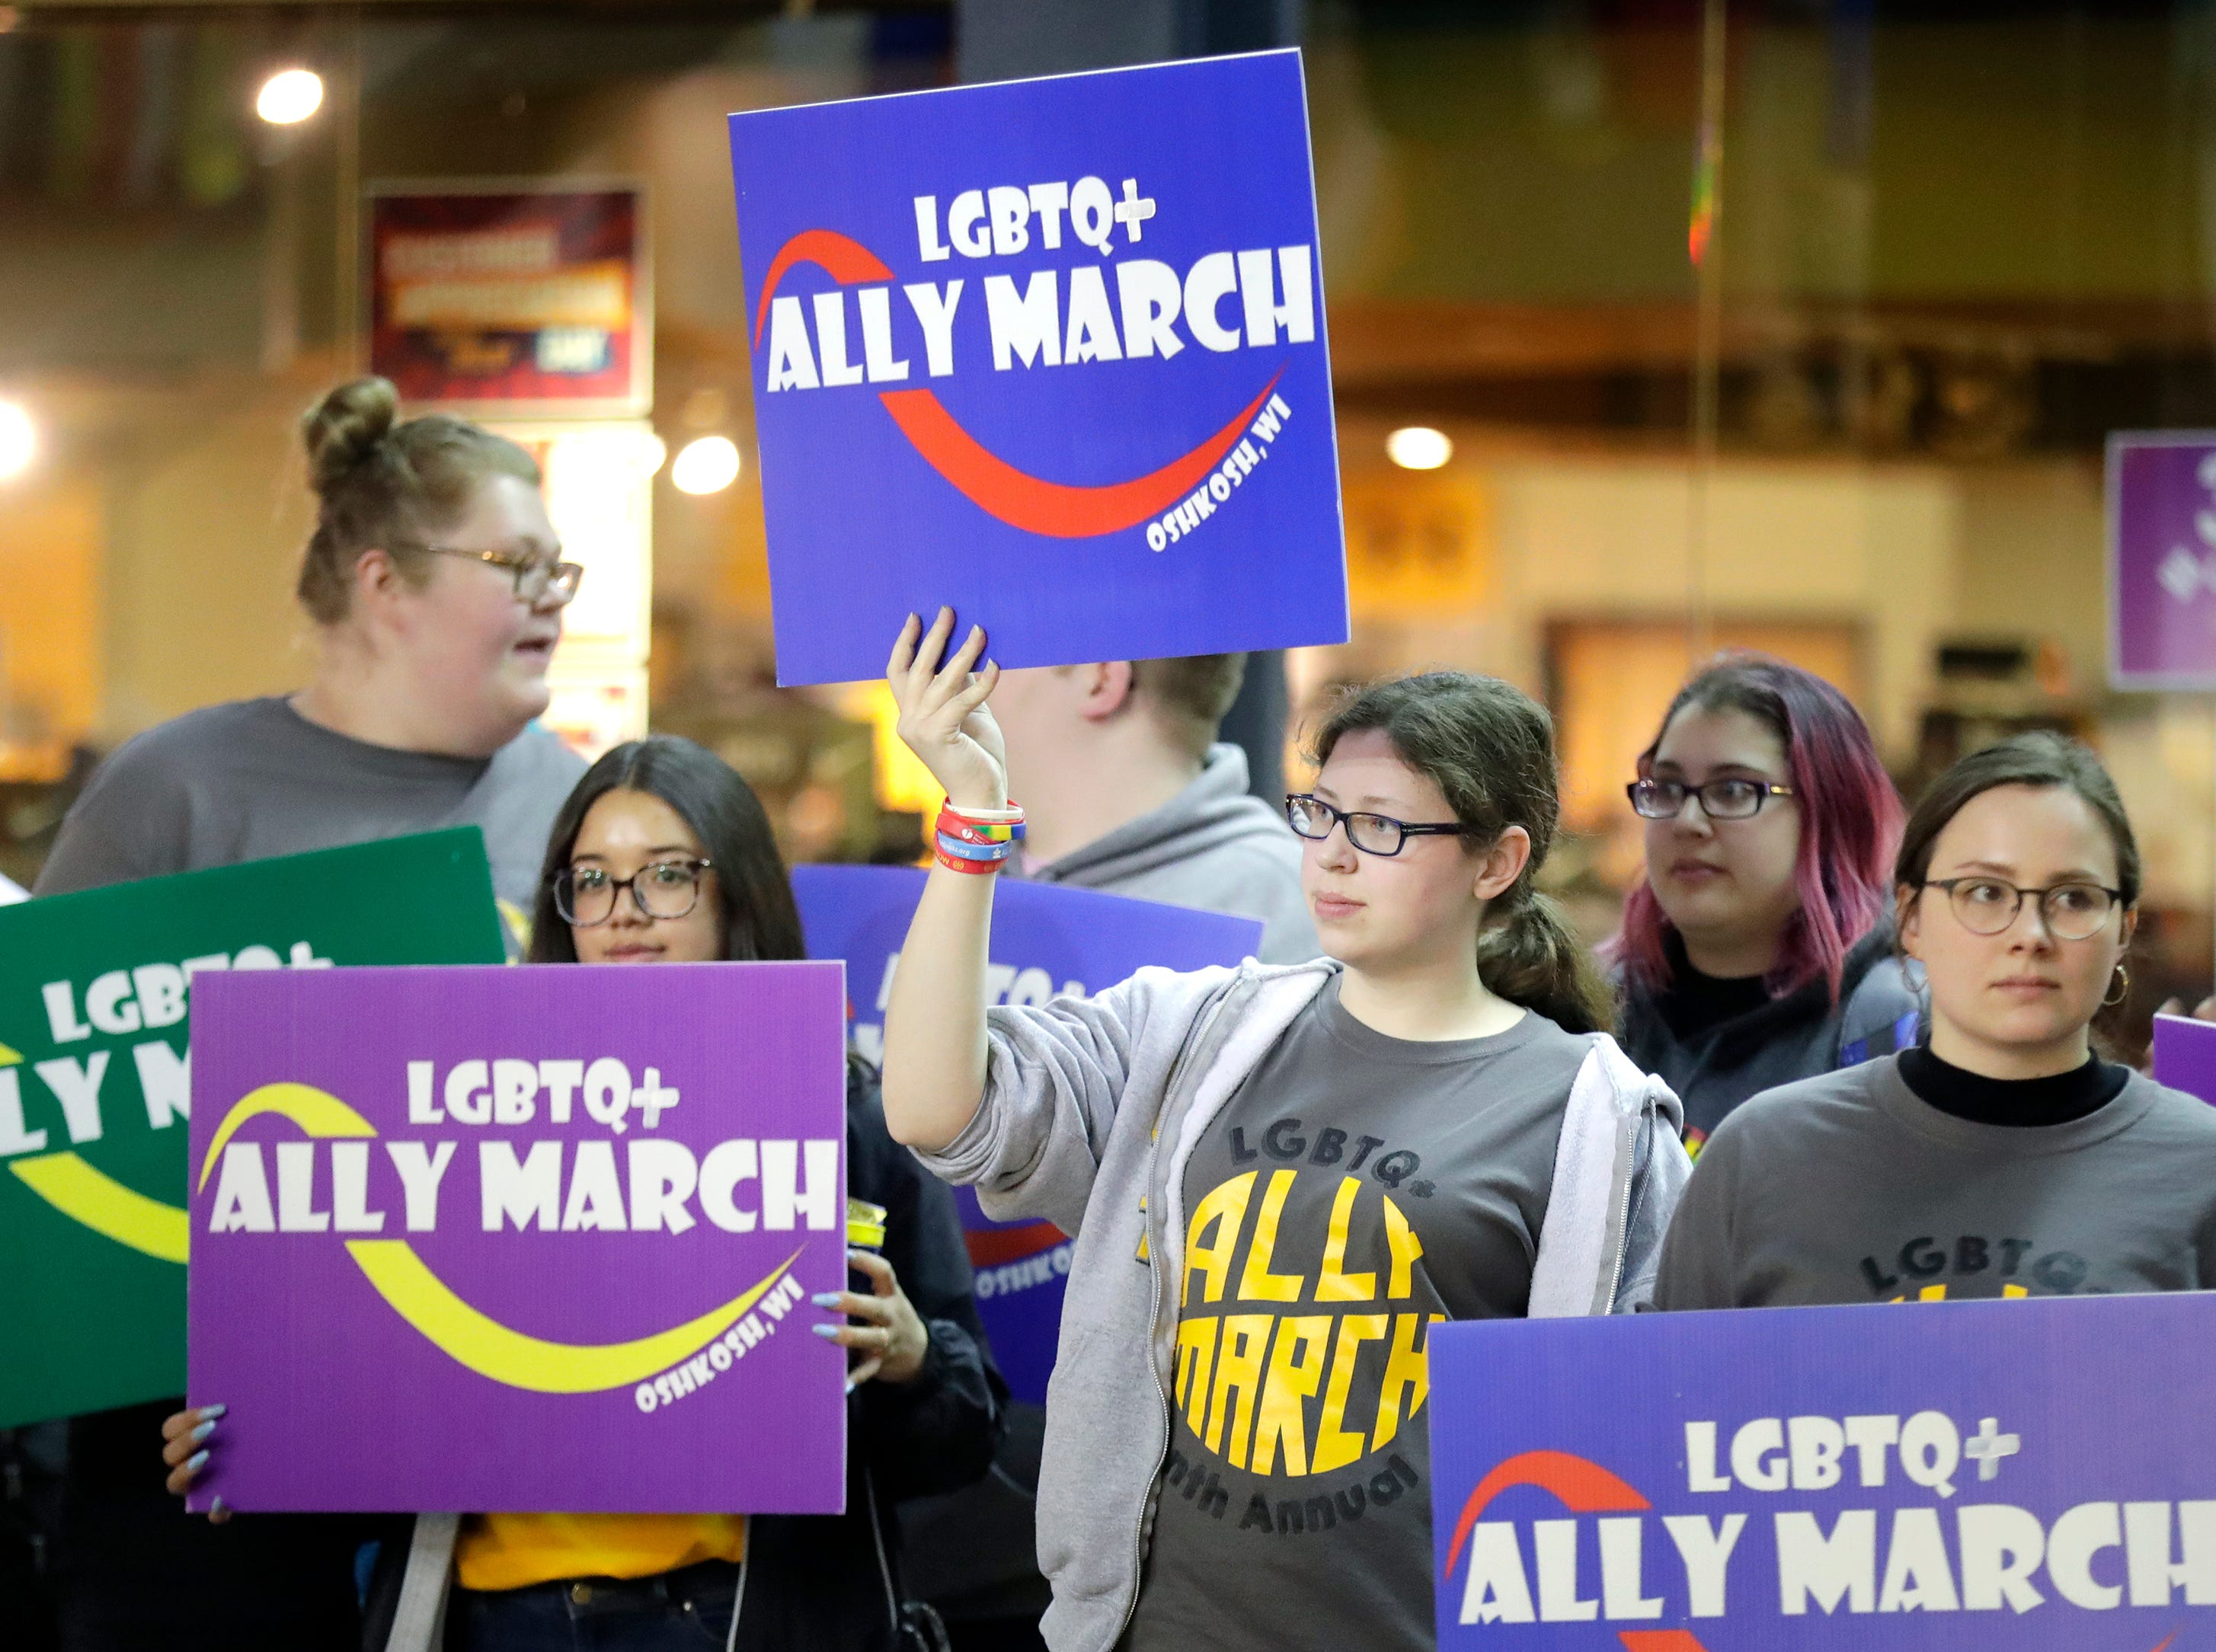 A silent protest during the 10th annual LGBTQ+ Ally March at the Reeve Memorial Union on the University of Wisconsin Oshkosh campus onWednesday, April 17, 2019, in Oshkosh, Wis. Wm. Glasheen/USA TODAY NETWORK-Wisconsin.